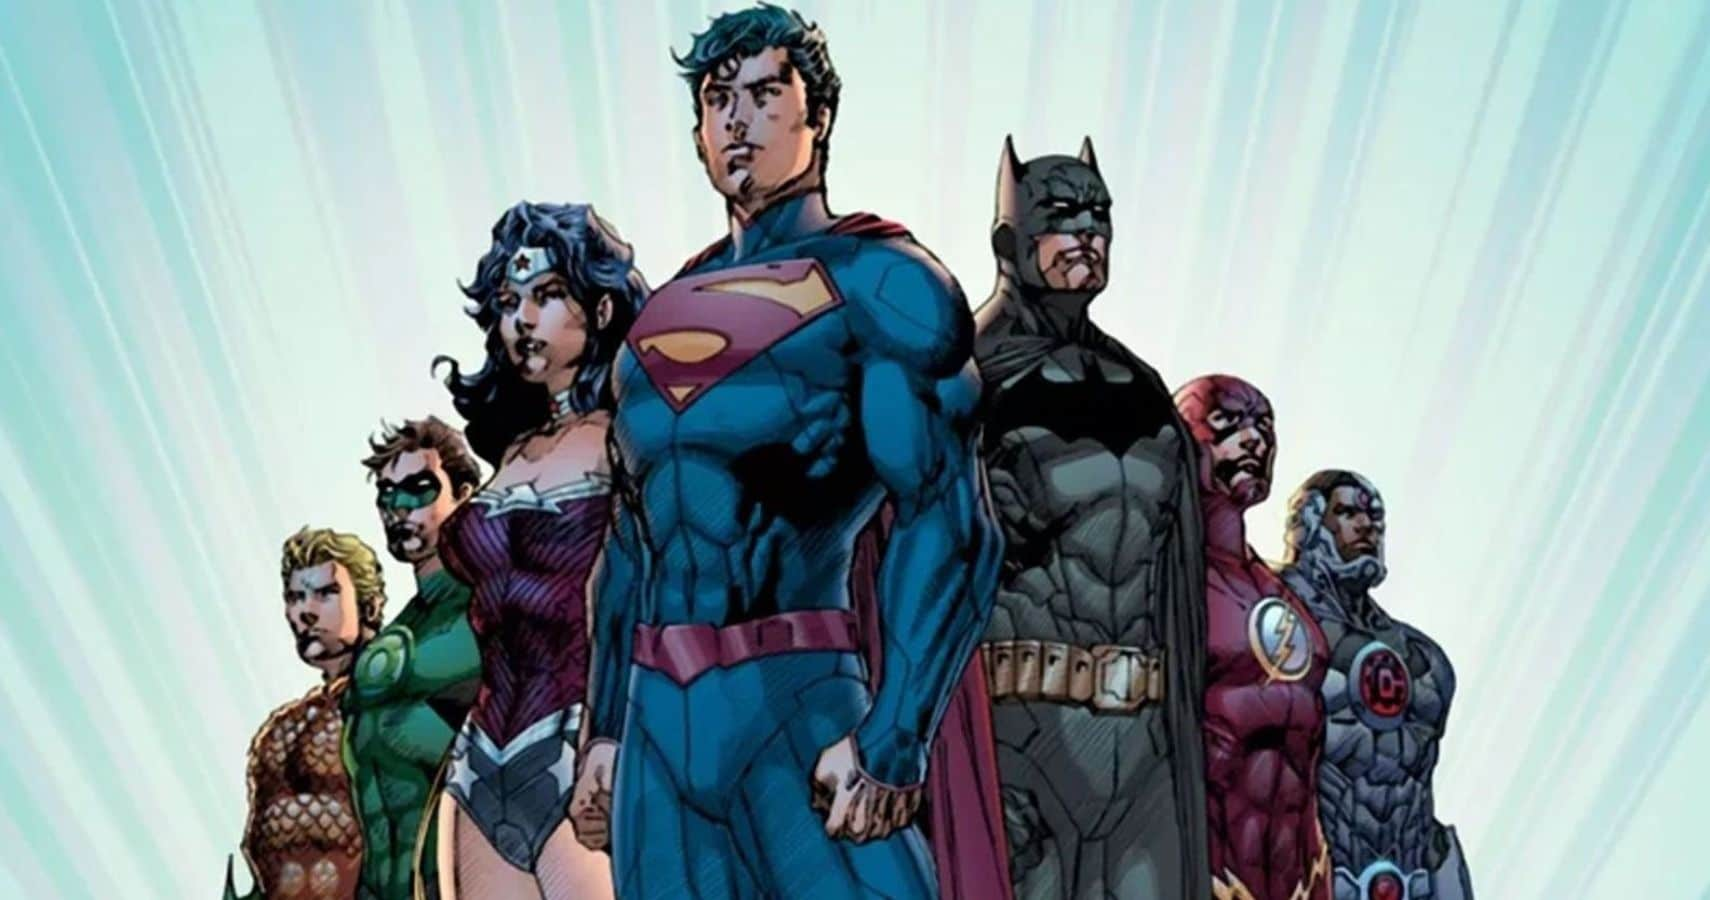 The various DC's New 52 characters